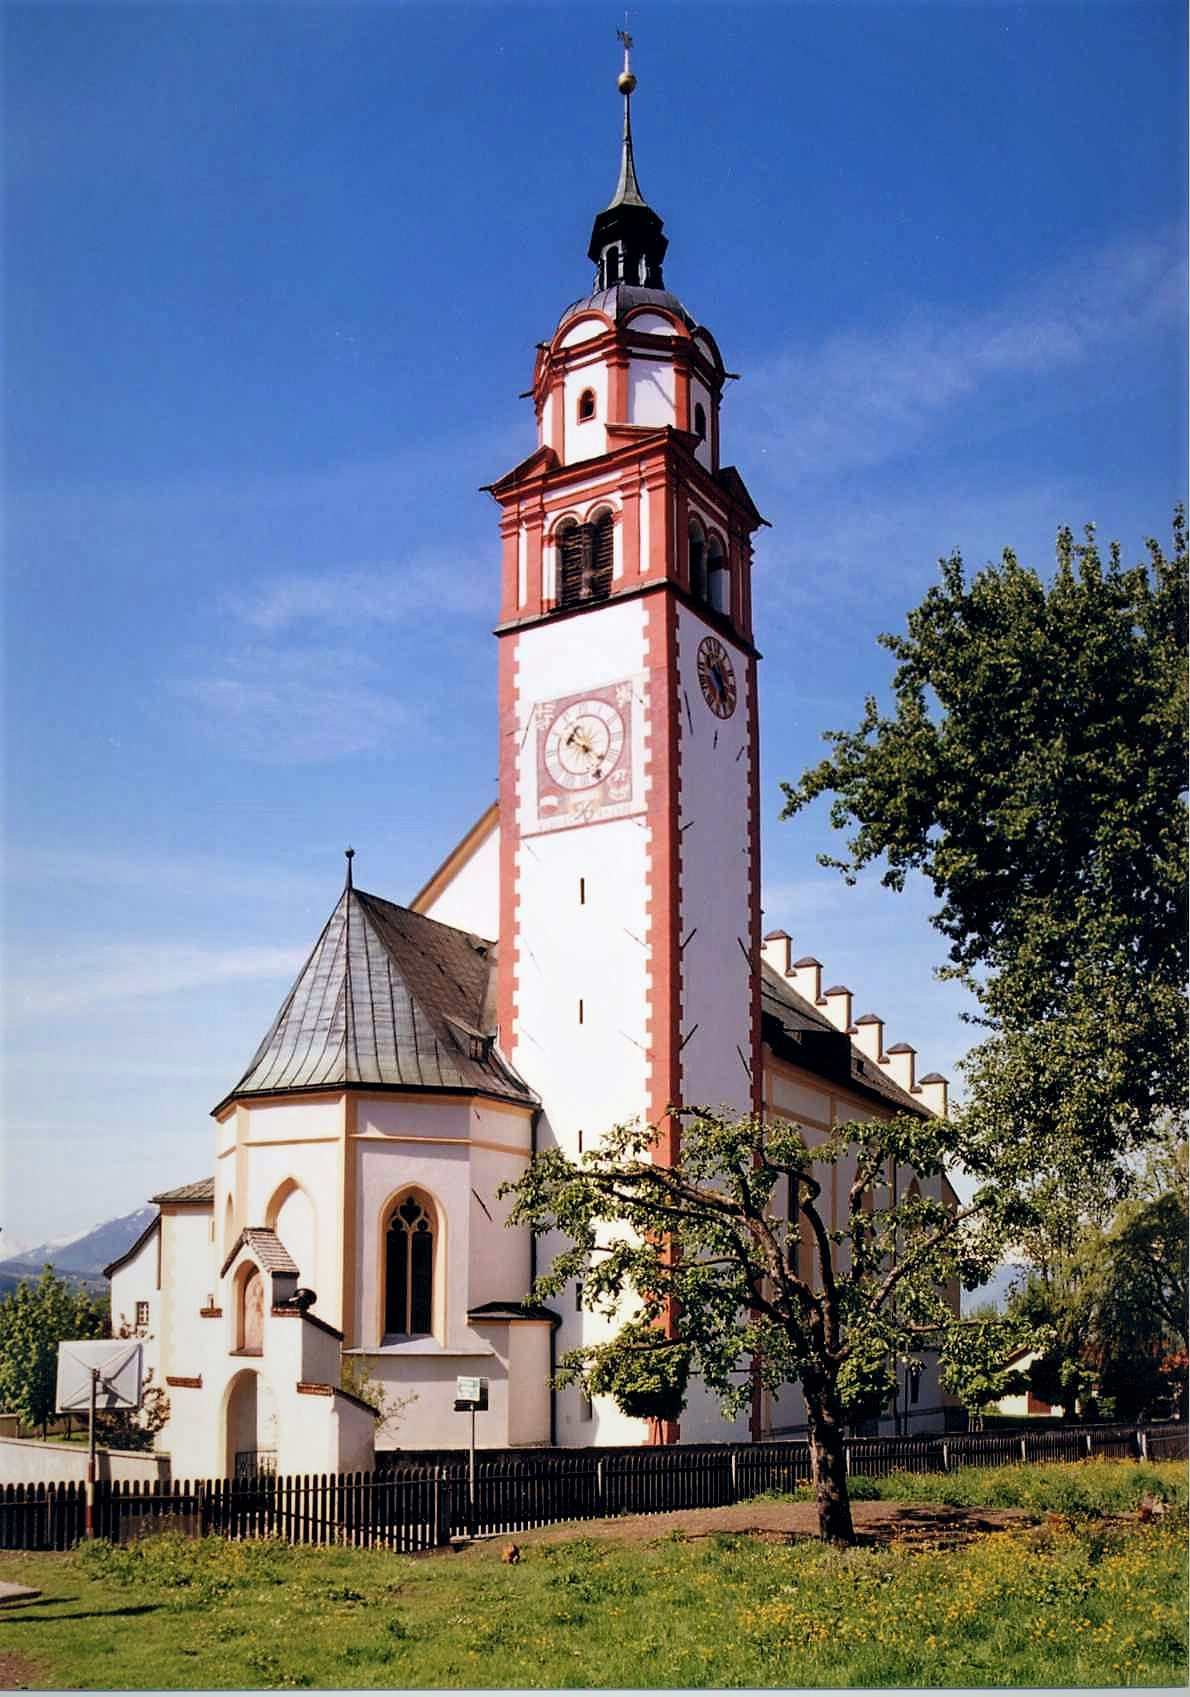 Austria: Experiences of Indian Missionary in Secularised Society